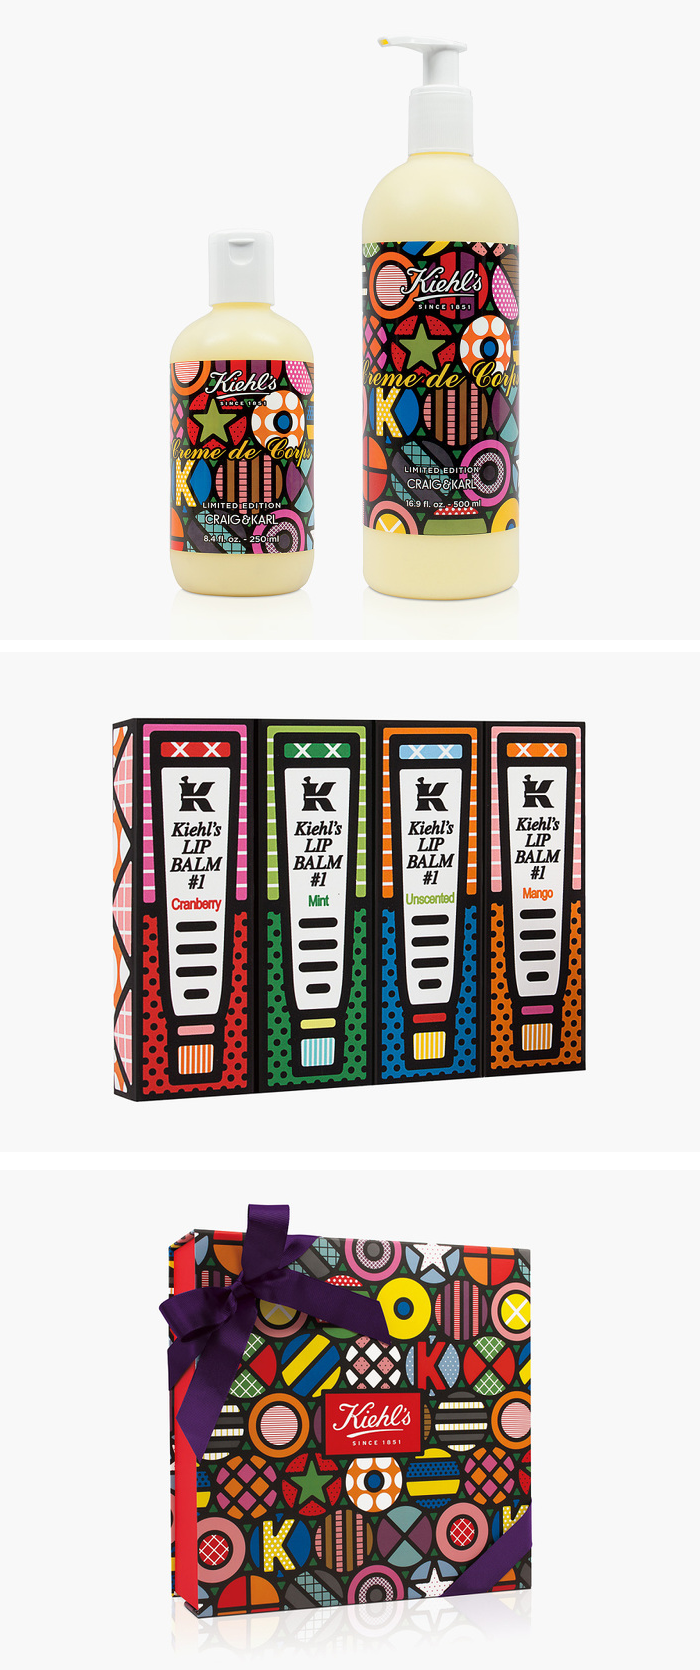 Kiehls pop art